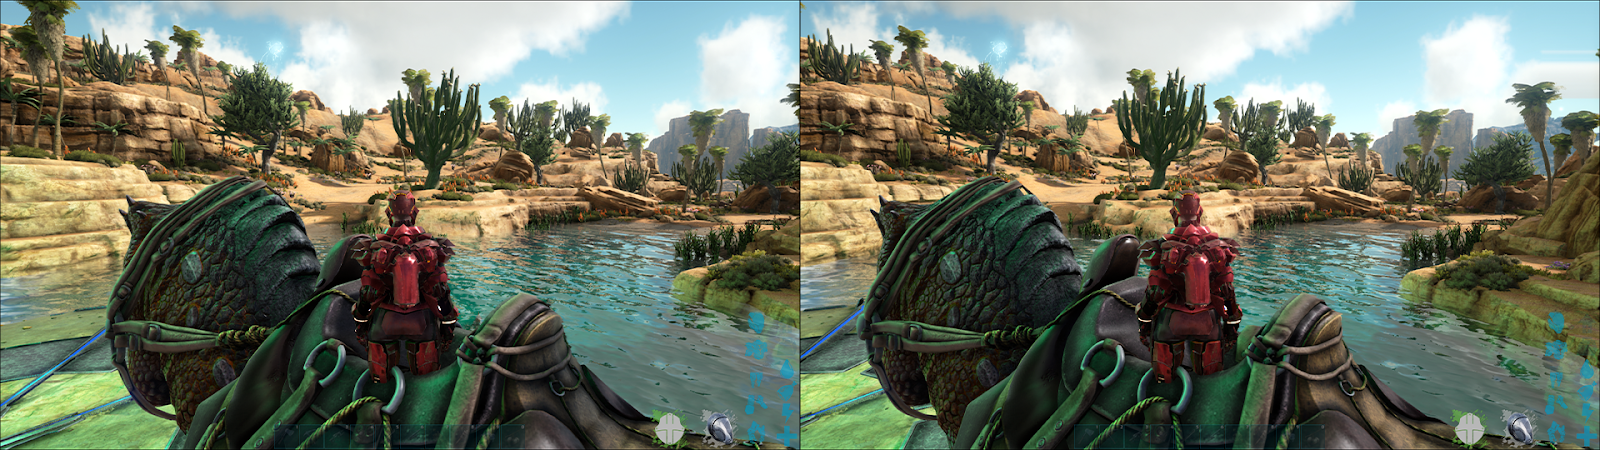 Helix Mod: Ark: Survival Evolved